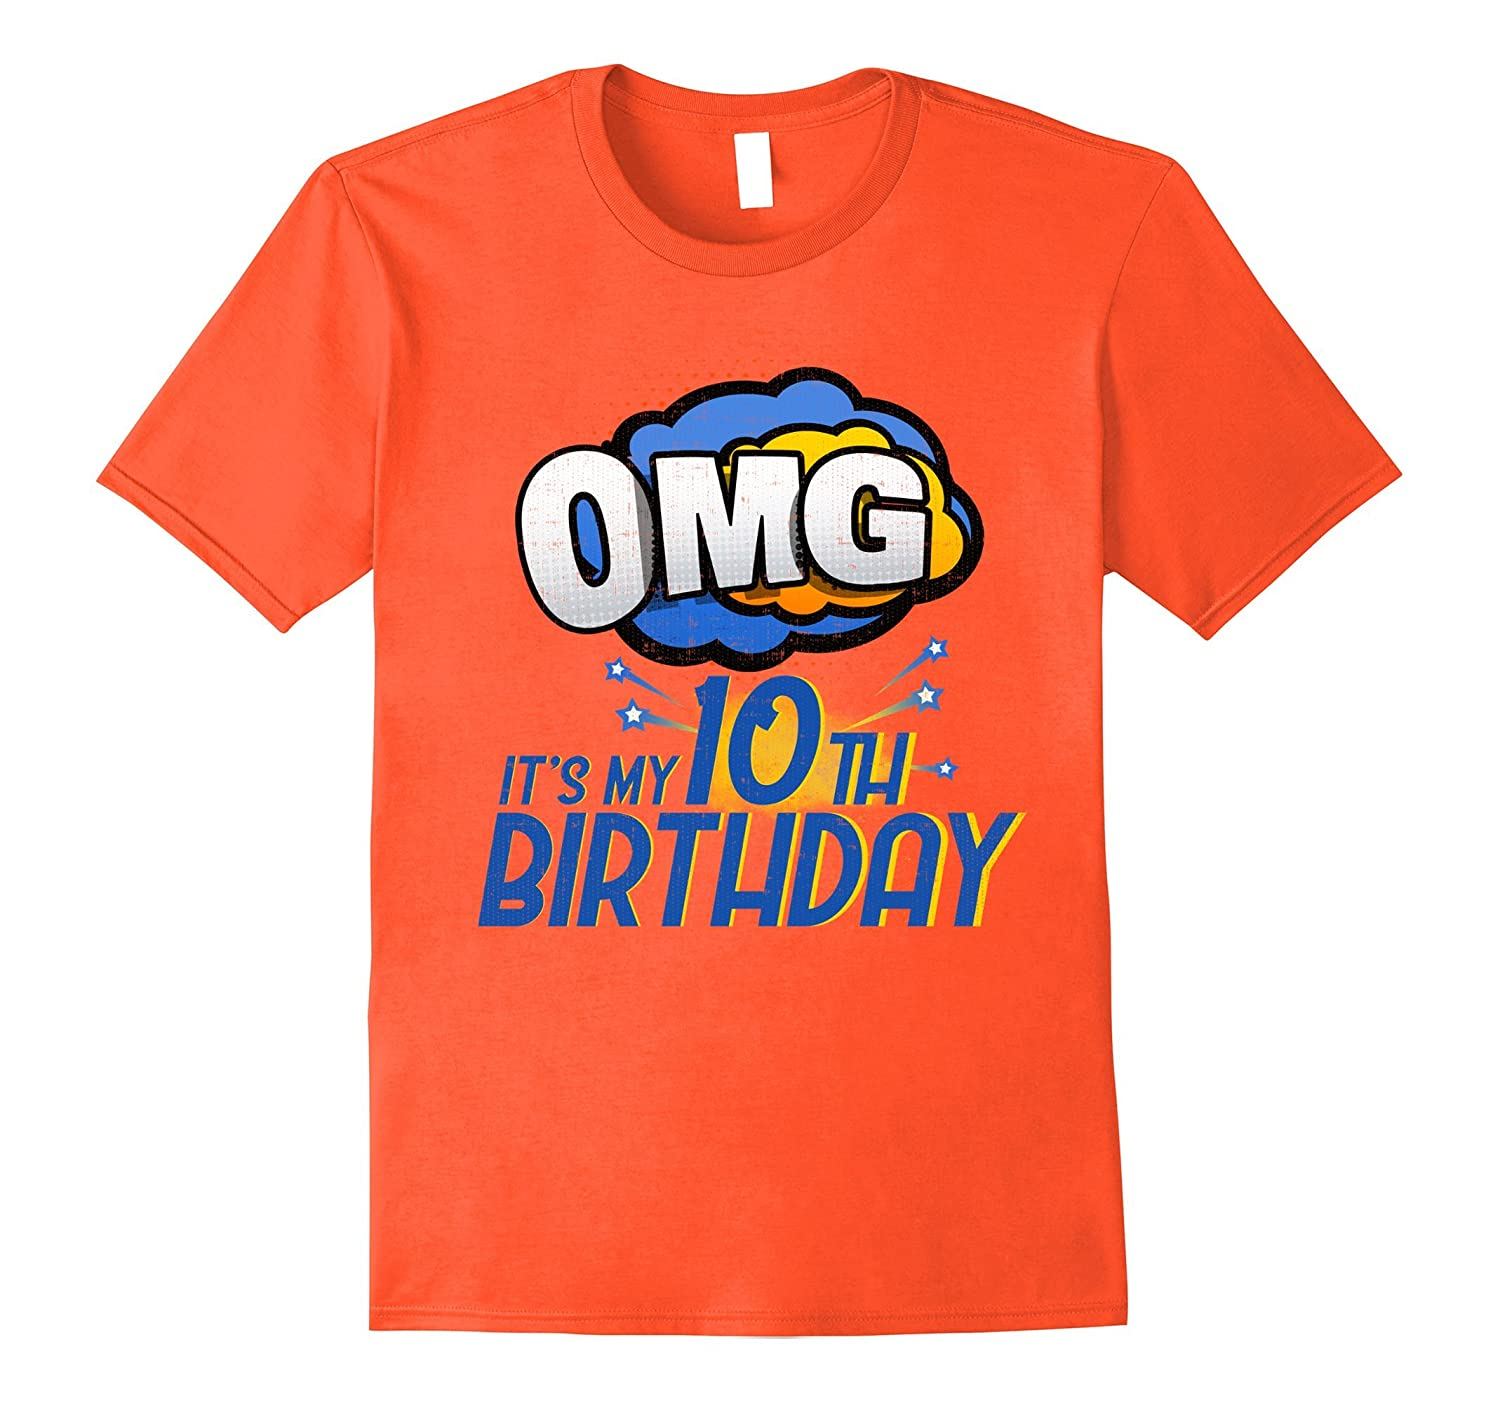 10th Birthday boy T shirt - Funny OMG it's my birthday-FL